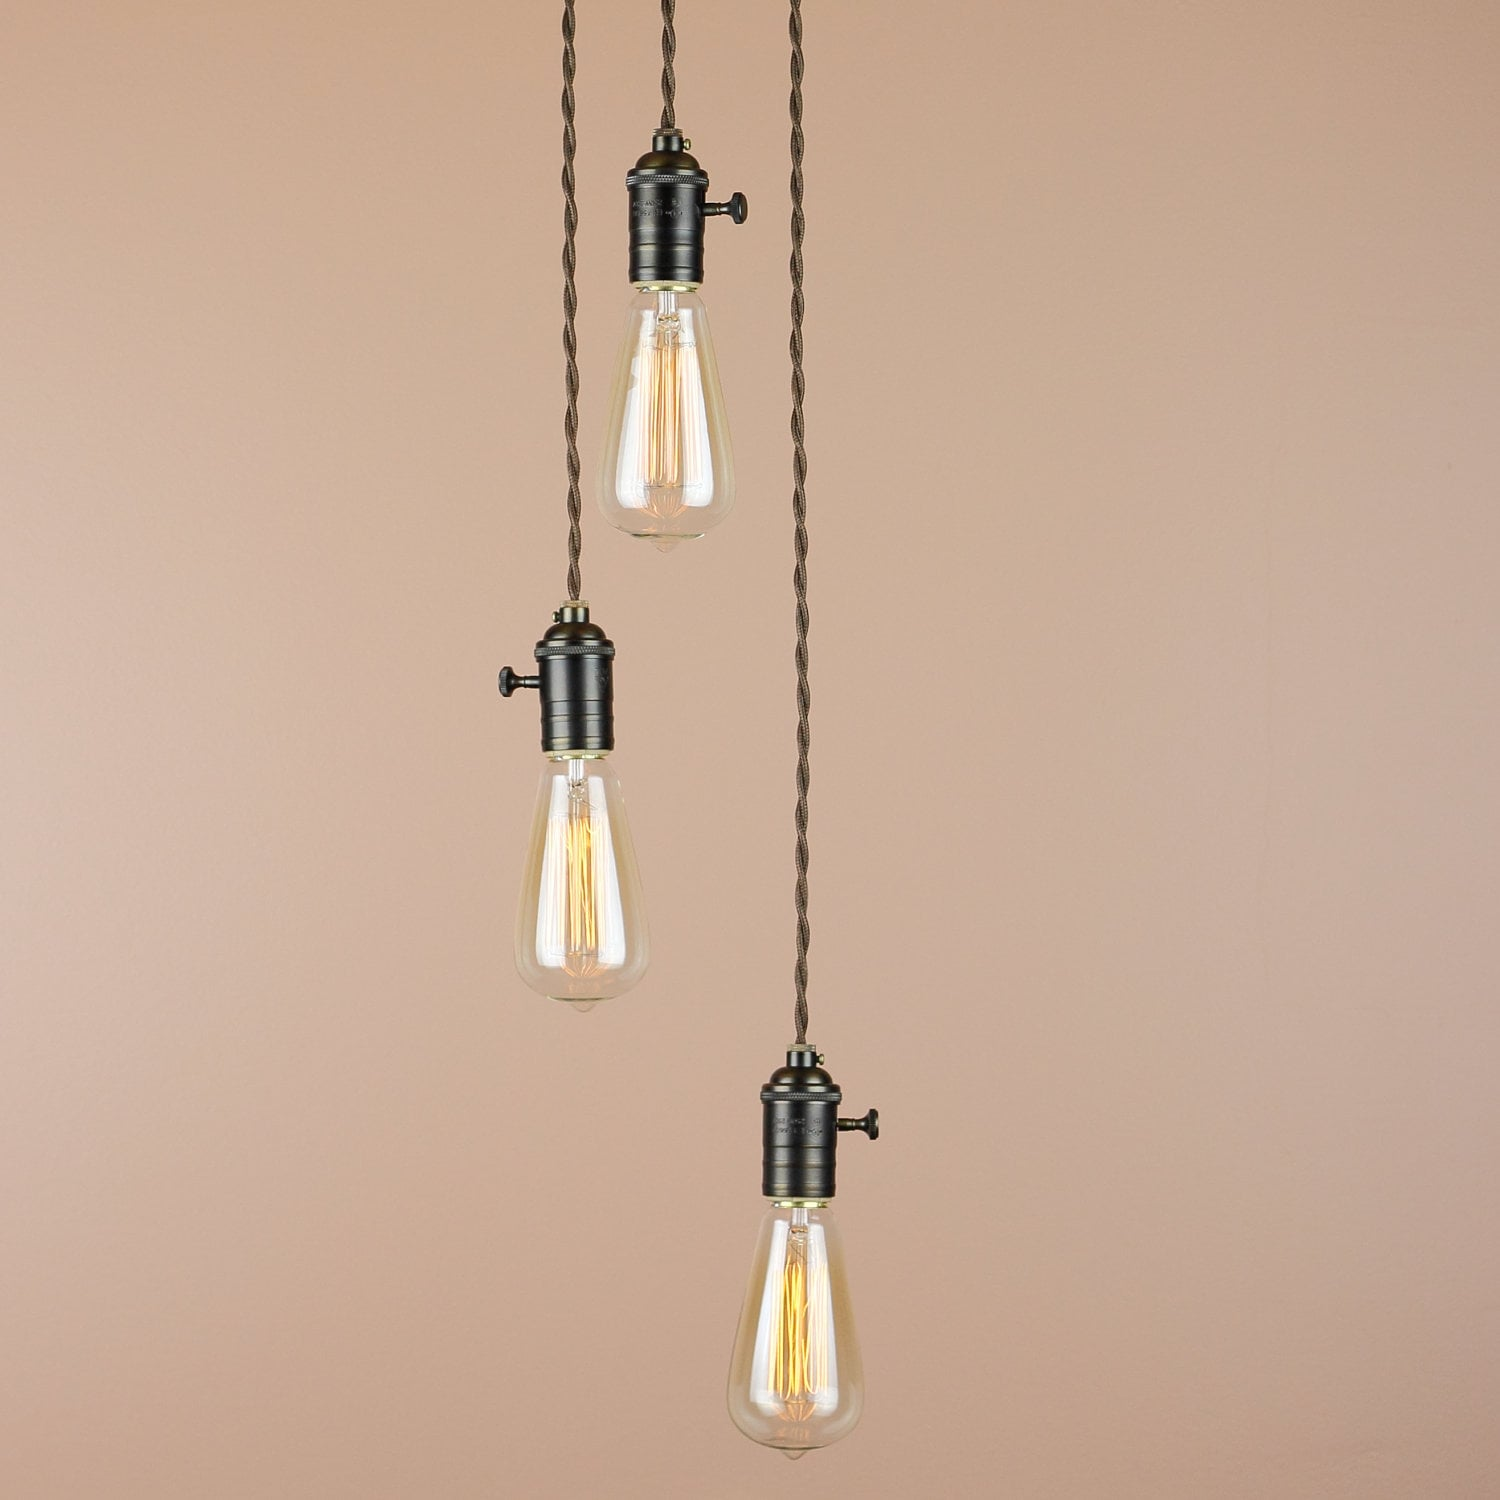 eboutique industrial bulbs light pendant vintage chic lamp hanging glass hanglamp loft products ceiling lights edison fixtures